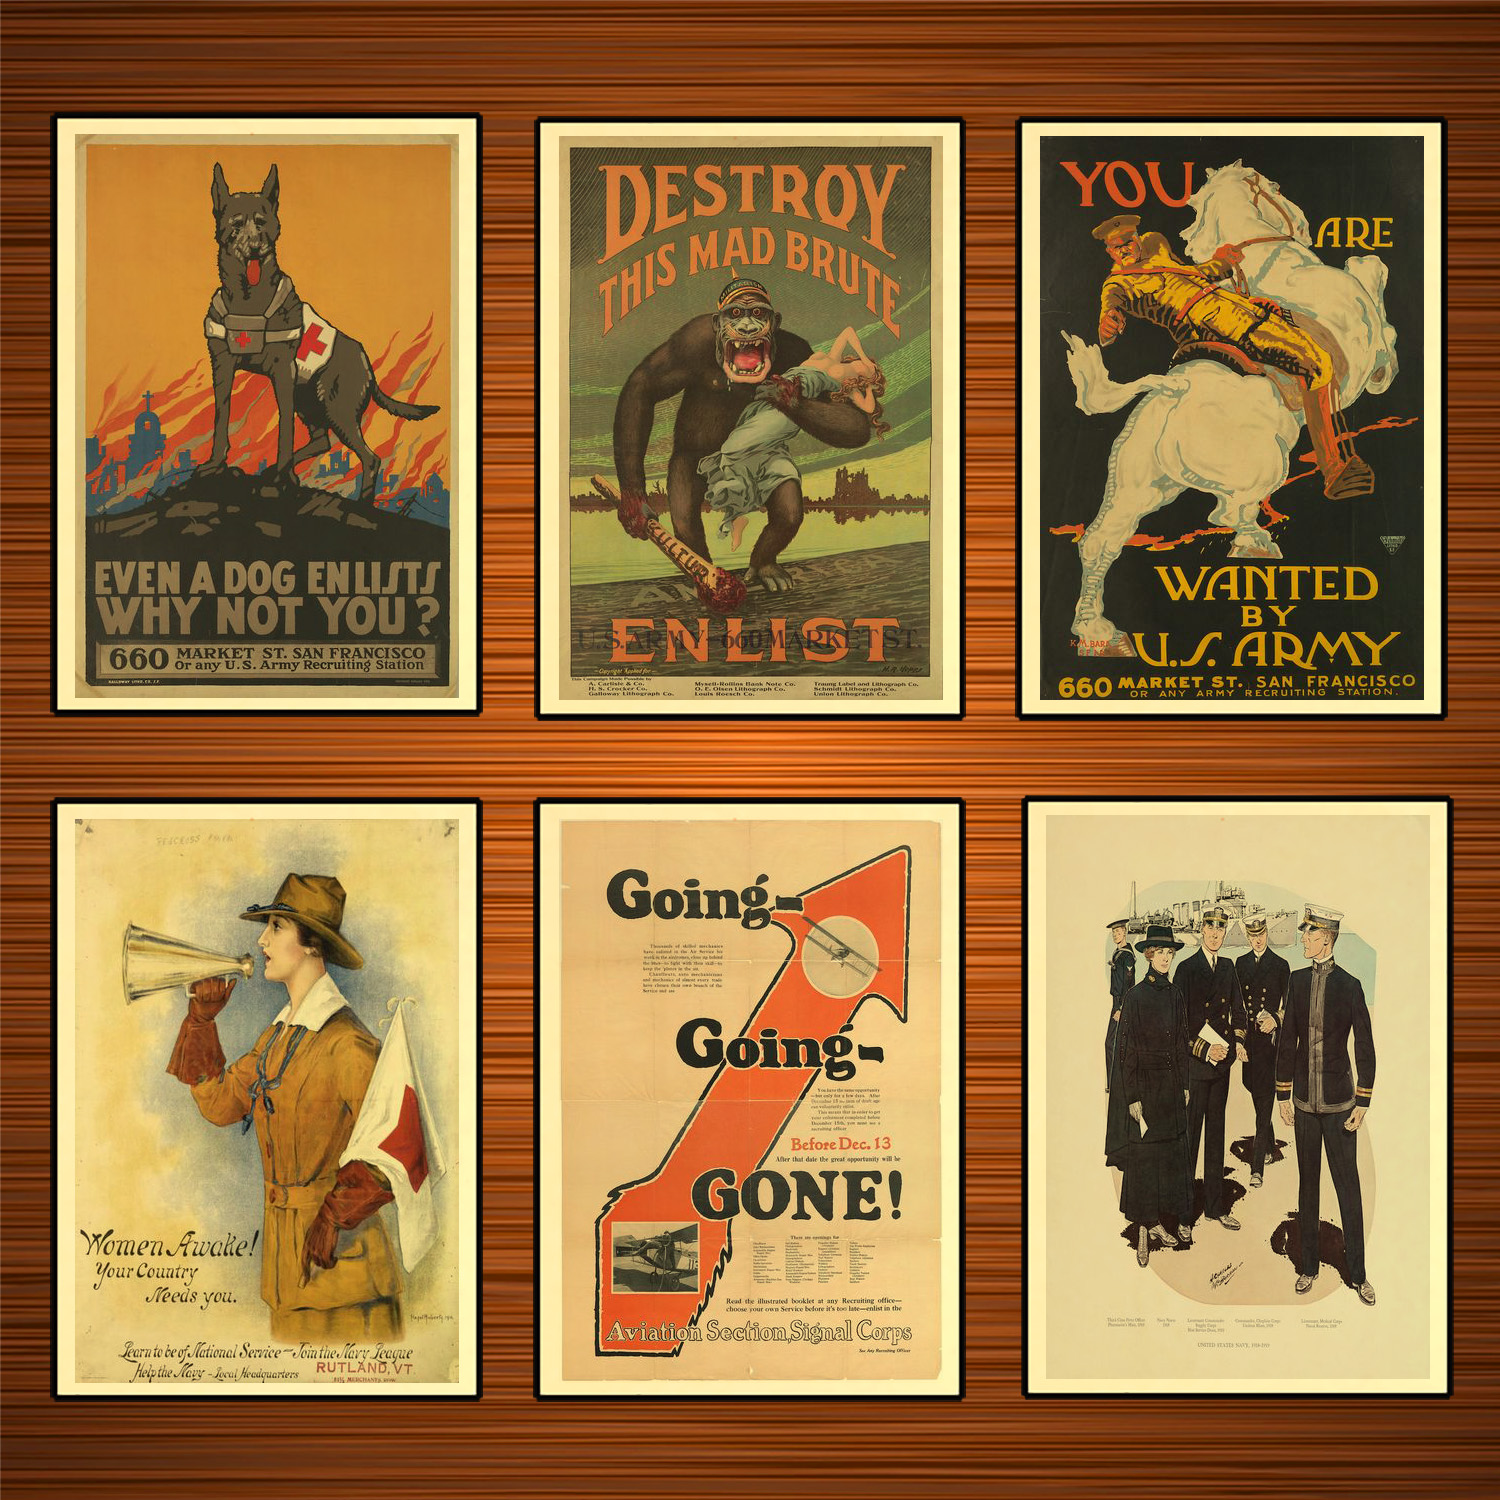 Vintage 1910s USA WW1 Propaganda Poster Destroy This Mad Brute Classic Canvas Paintings Wall Stickers Home Decor Gift image